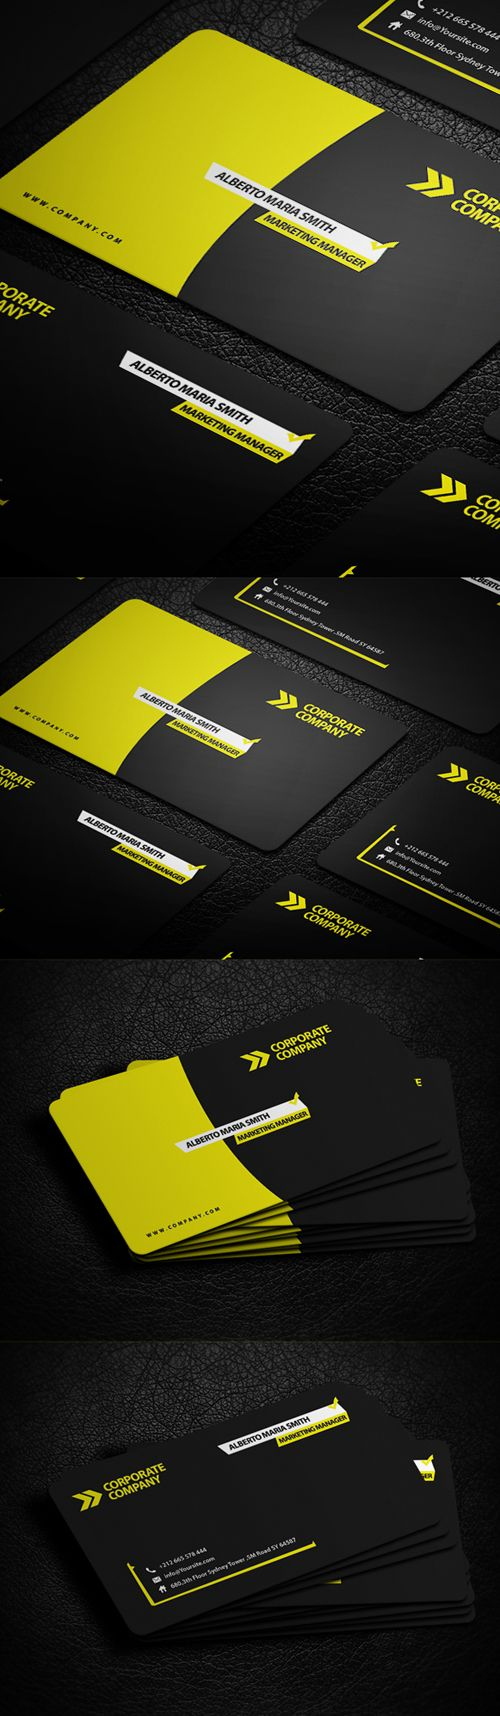 business cards template design - 11 #businesscards #businesscardtemplates #creativebusinesscards